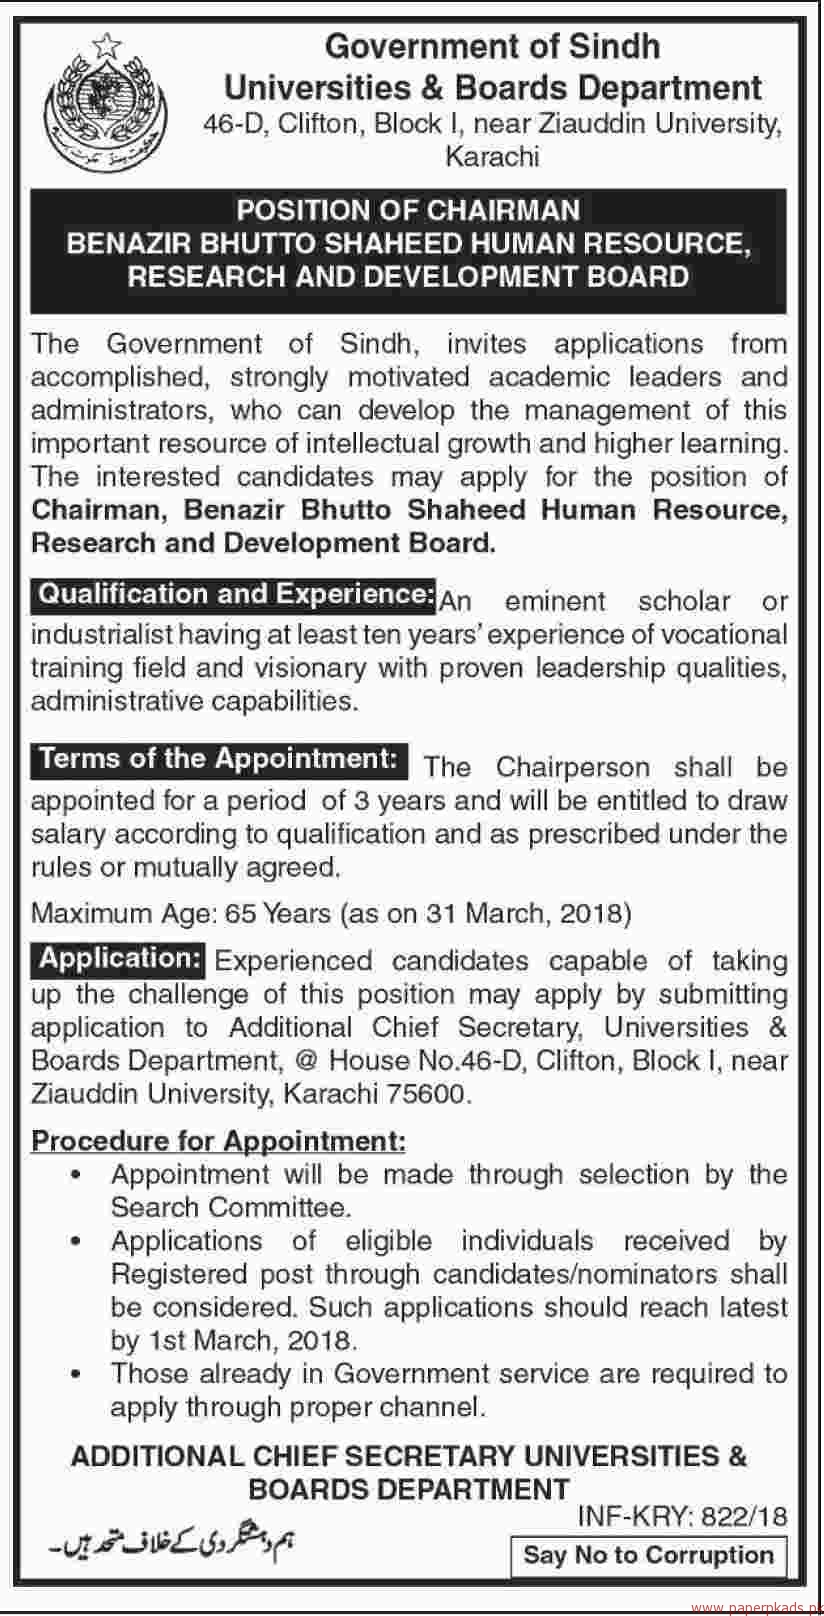 Government of Sindh - Universities & BOards Department Jobs 2018